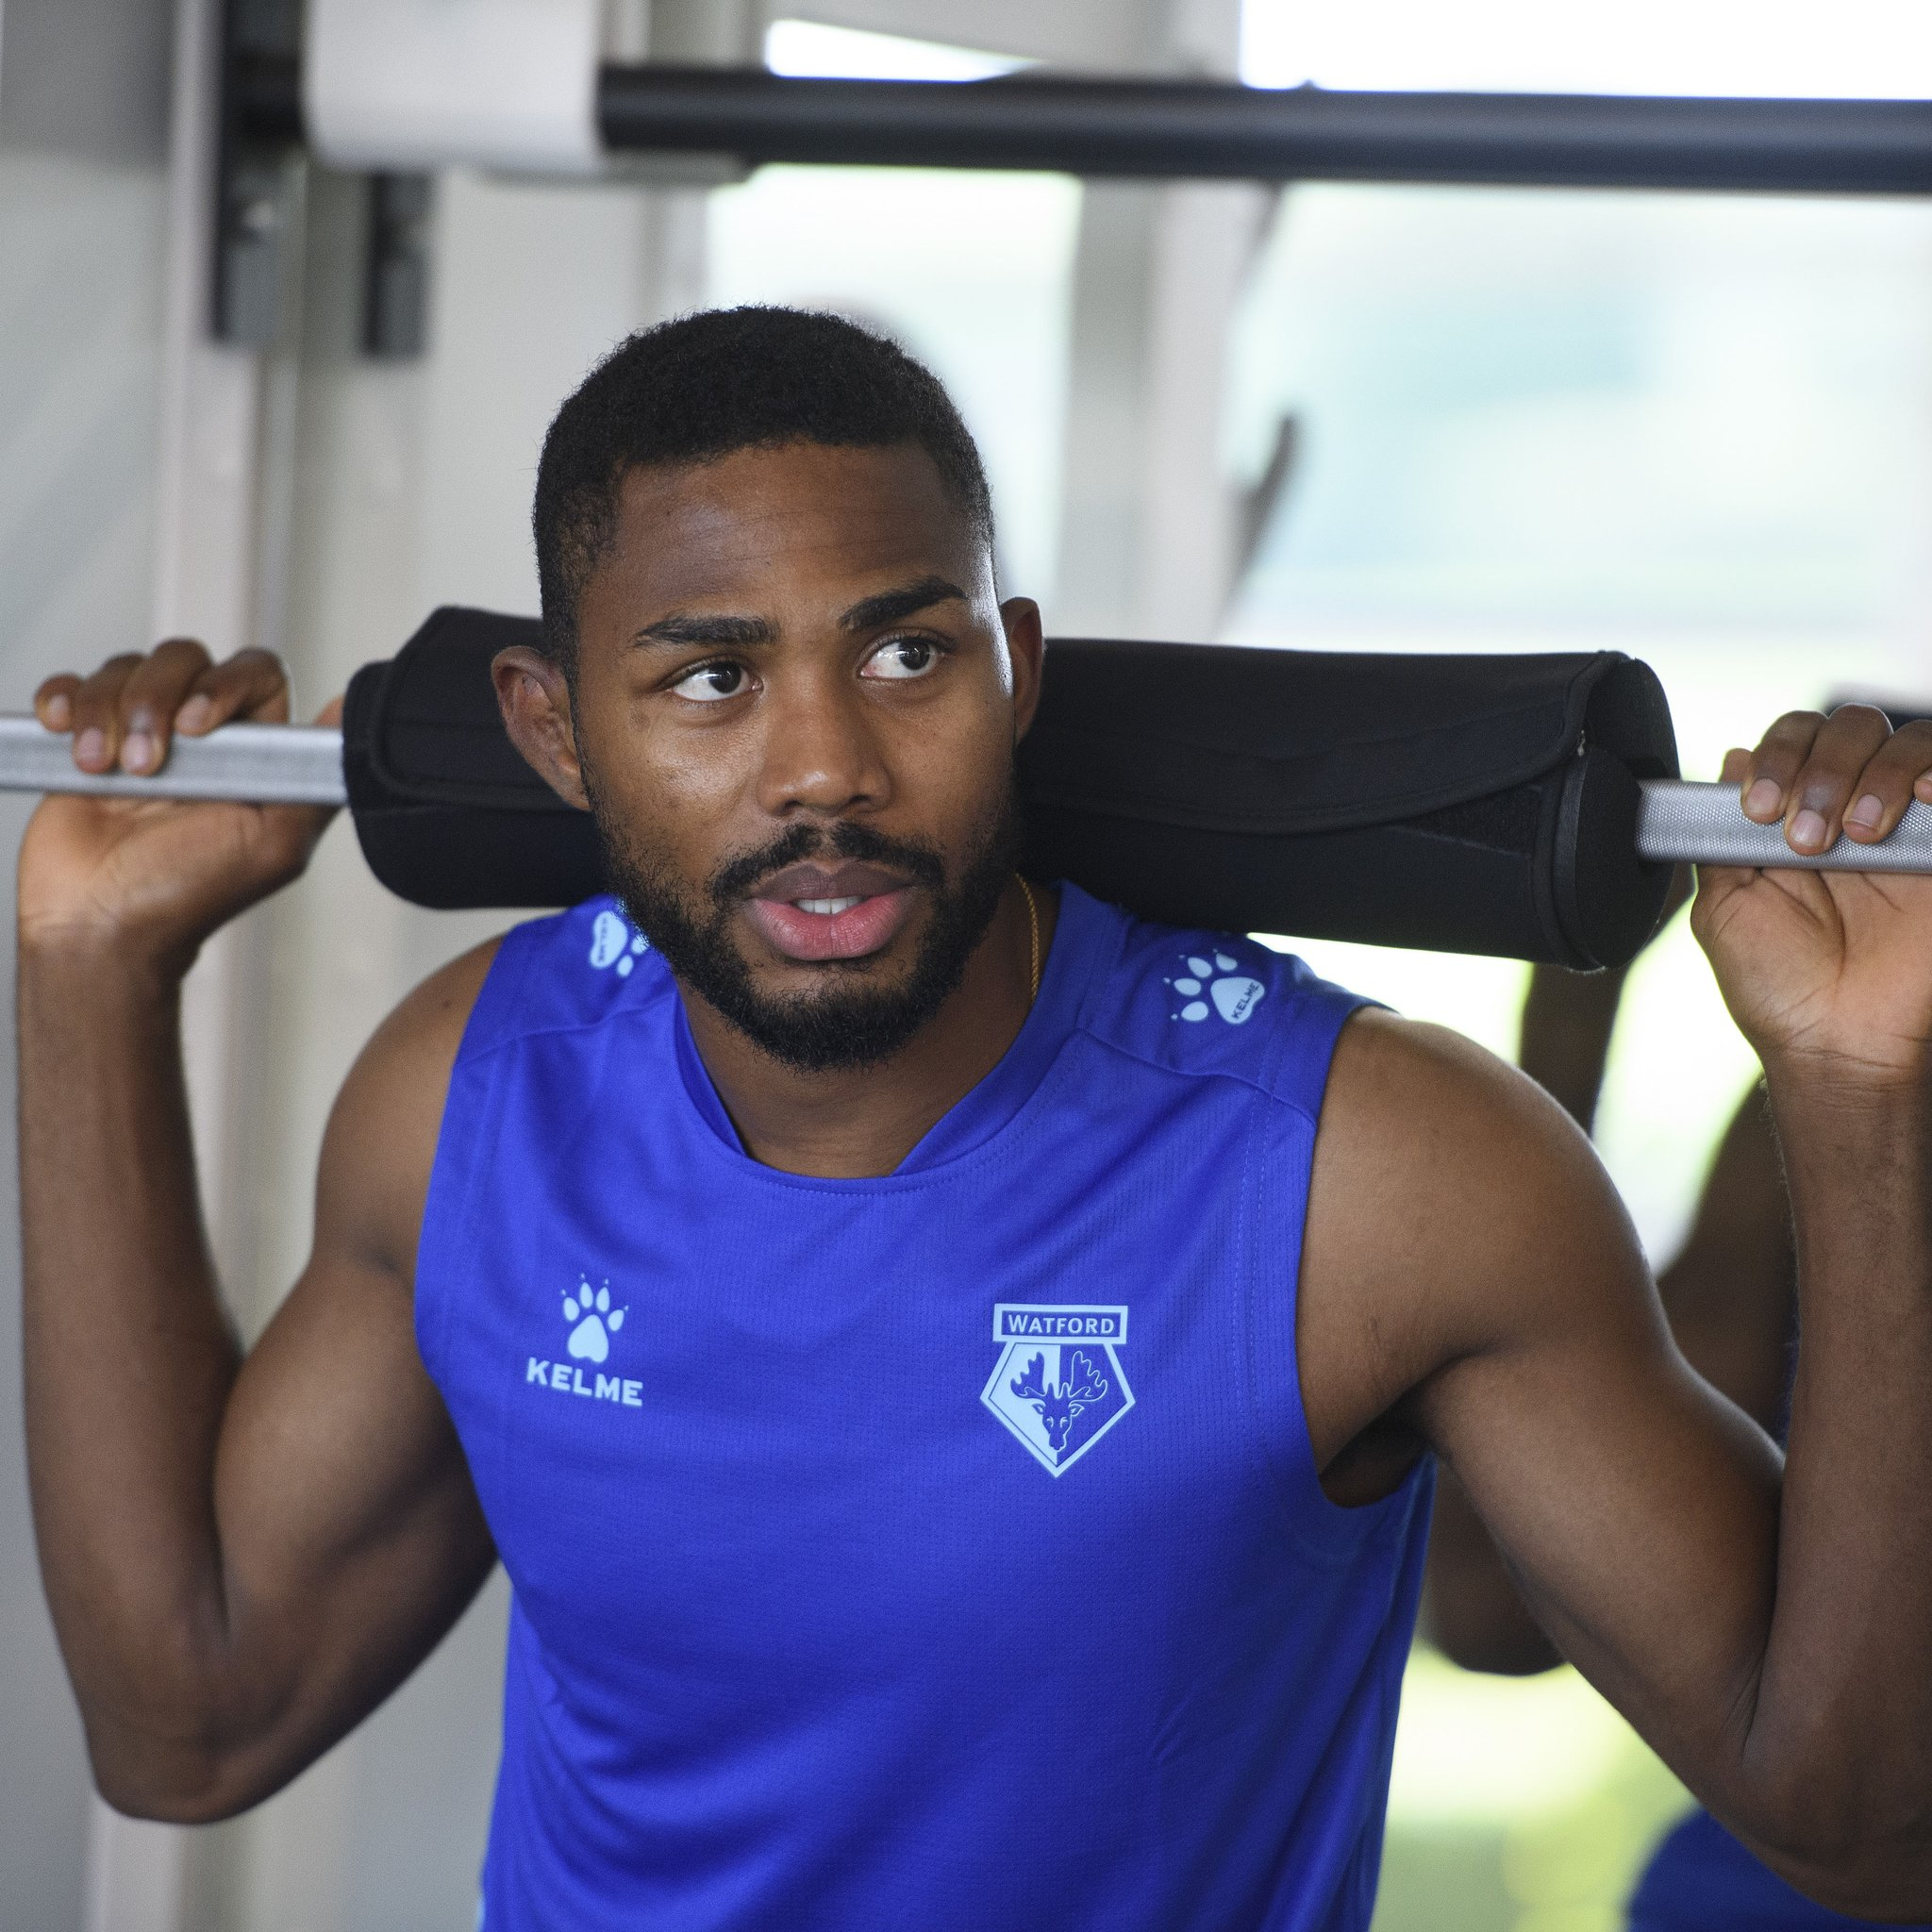 'I'm Happy To Be Here'-  Dennis Delighted To  Link Up With Watford